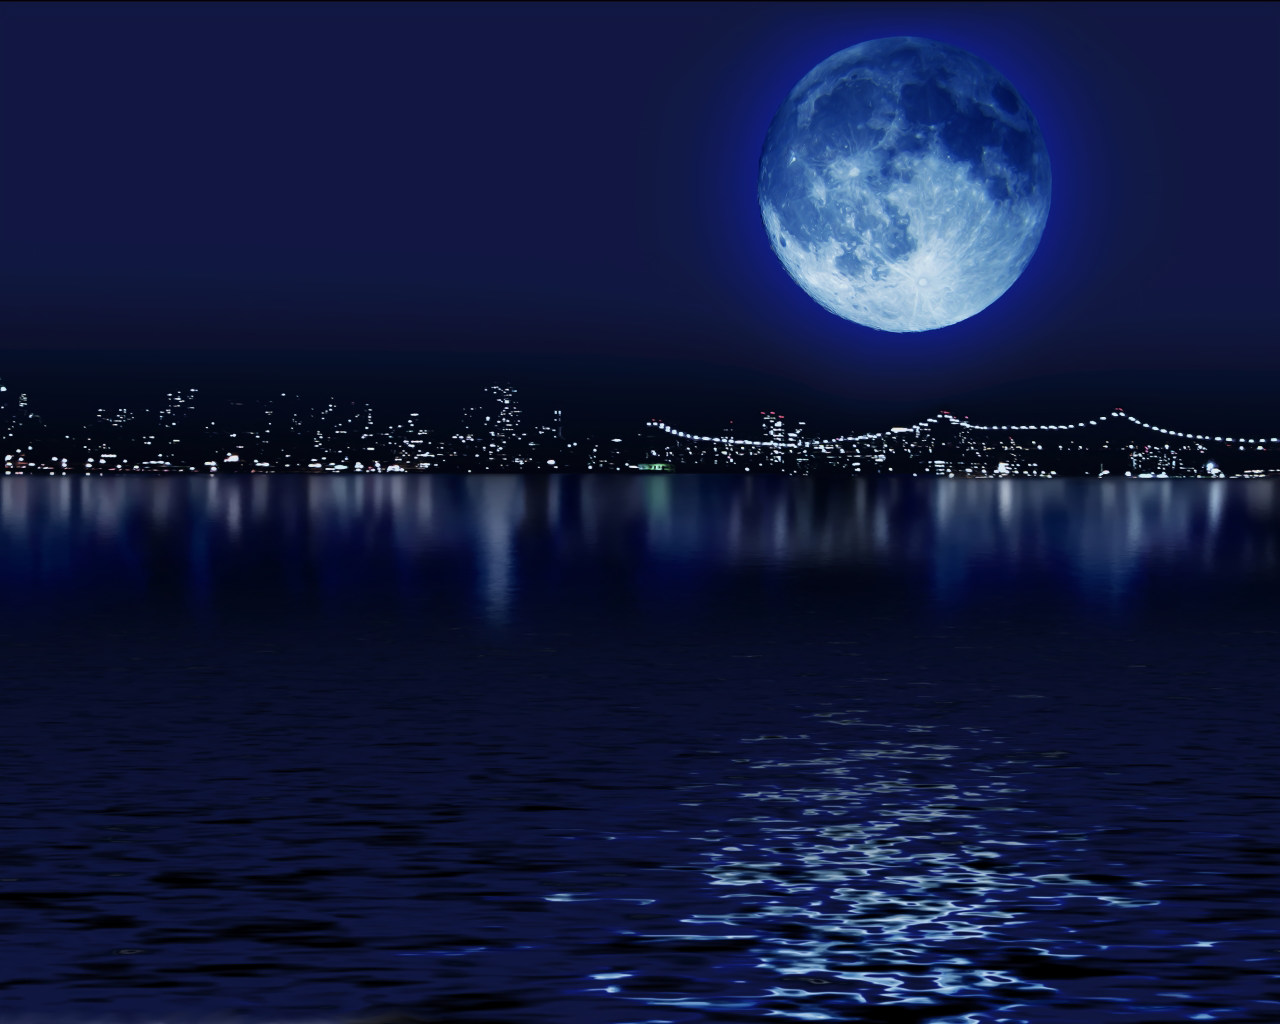 Blue Moon Wallpaper Hd - Page 2. Blue Moon Wallpaper Hd - Page 3. Blue...